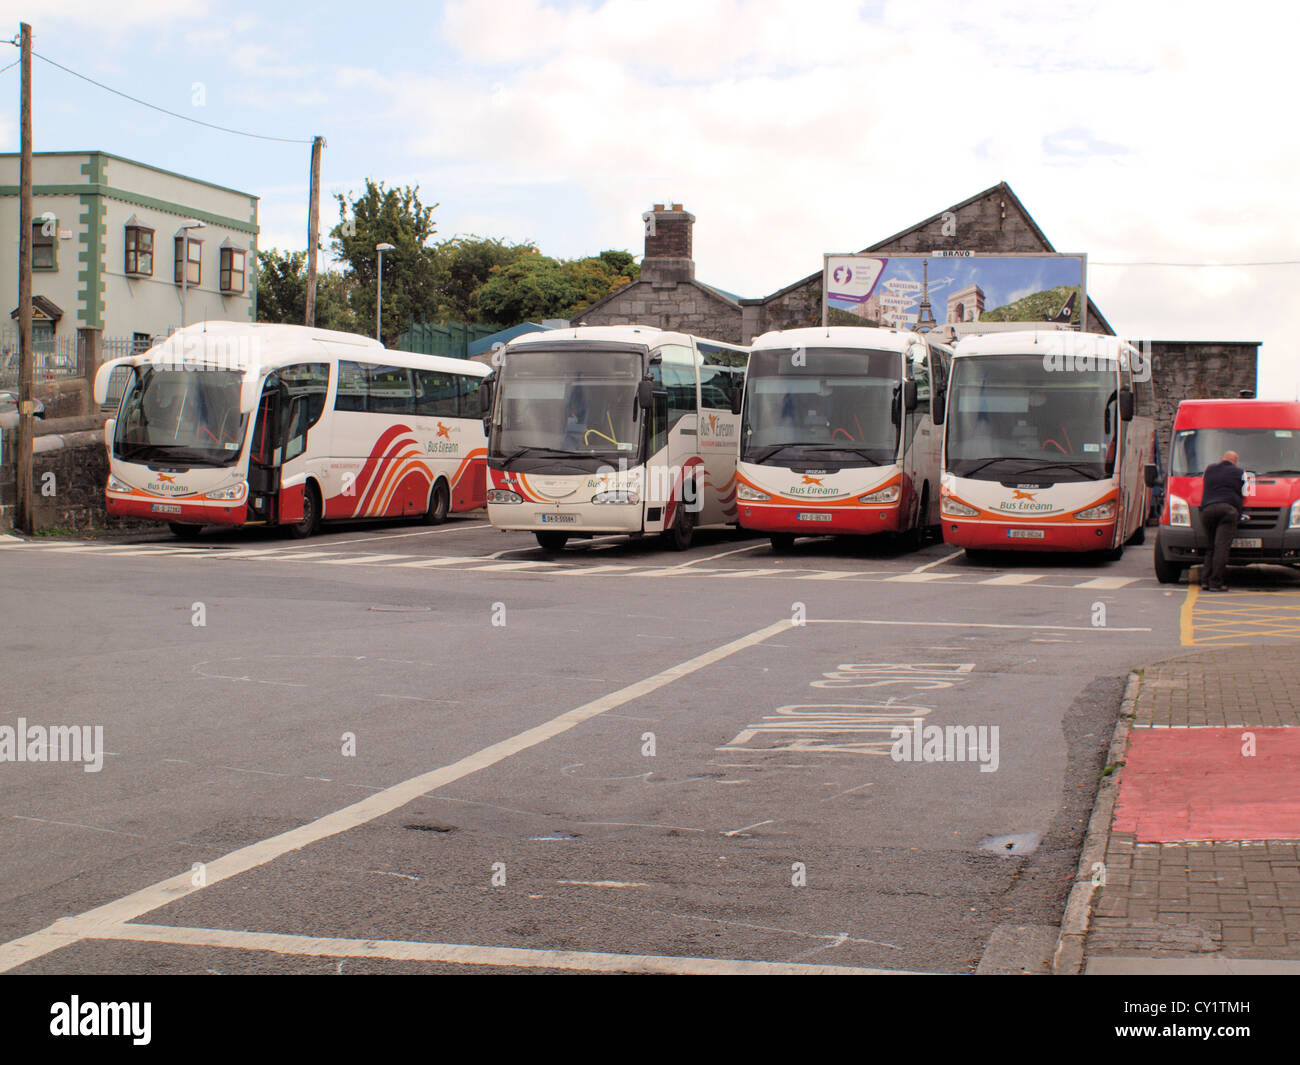 An assemblage of Irish Bus Eireann buses parked at Galway City train and bus station in the West of Ireland. - Stock Image